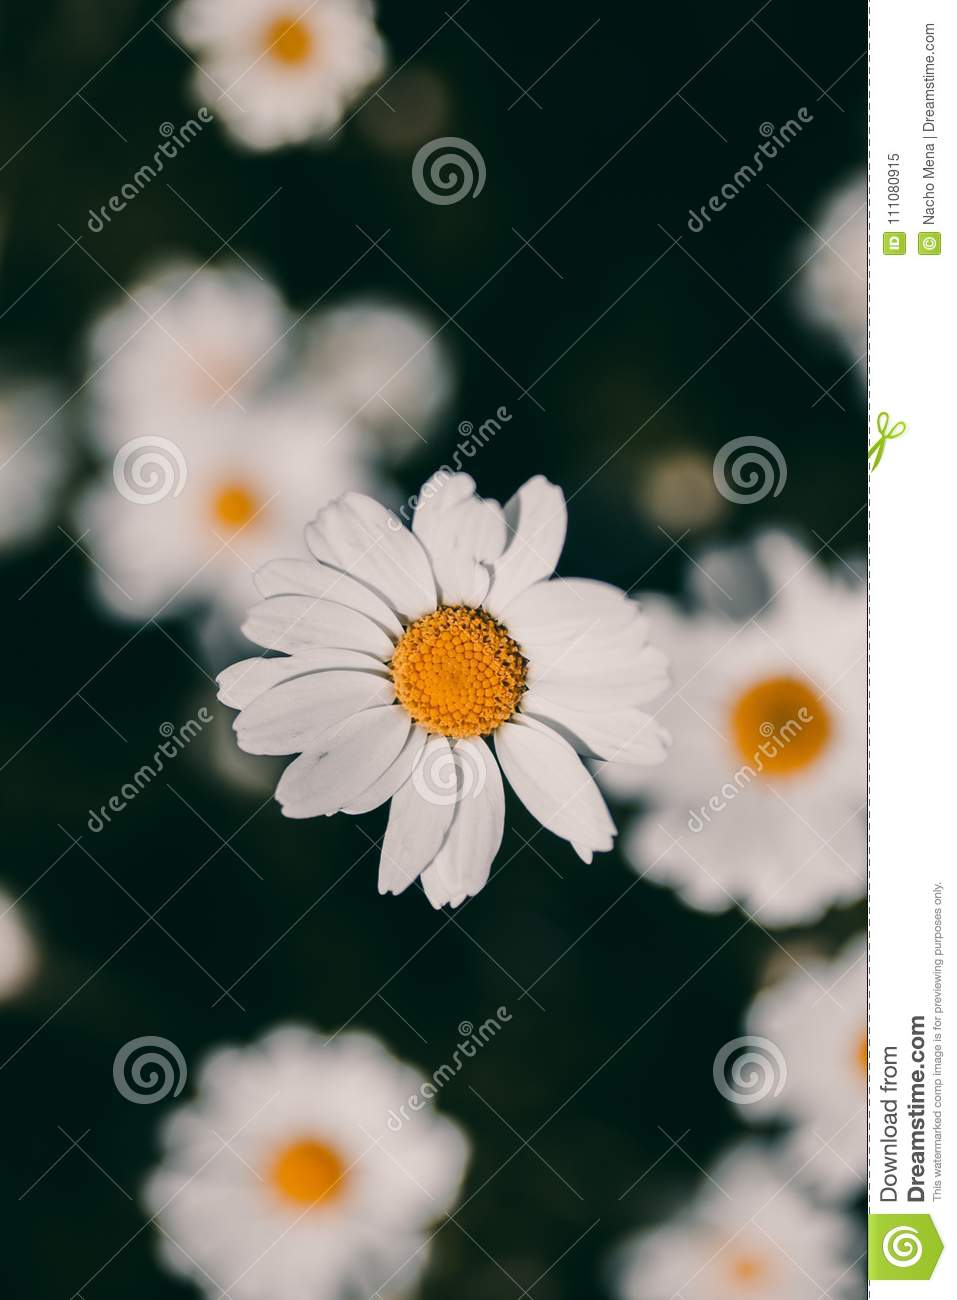 Daisies vintage background closeup of daisy flower in vintage style daisies vintage background closeup of daisy flower in vintage style somber daisy flowers izmirmasajfo